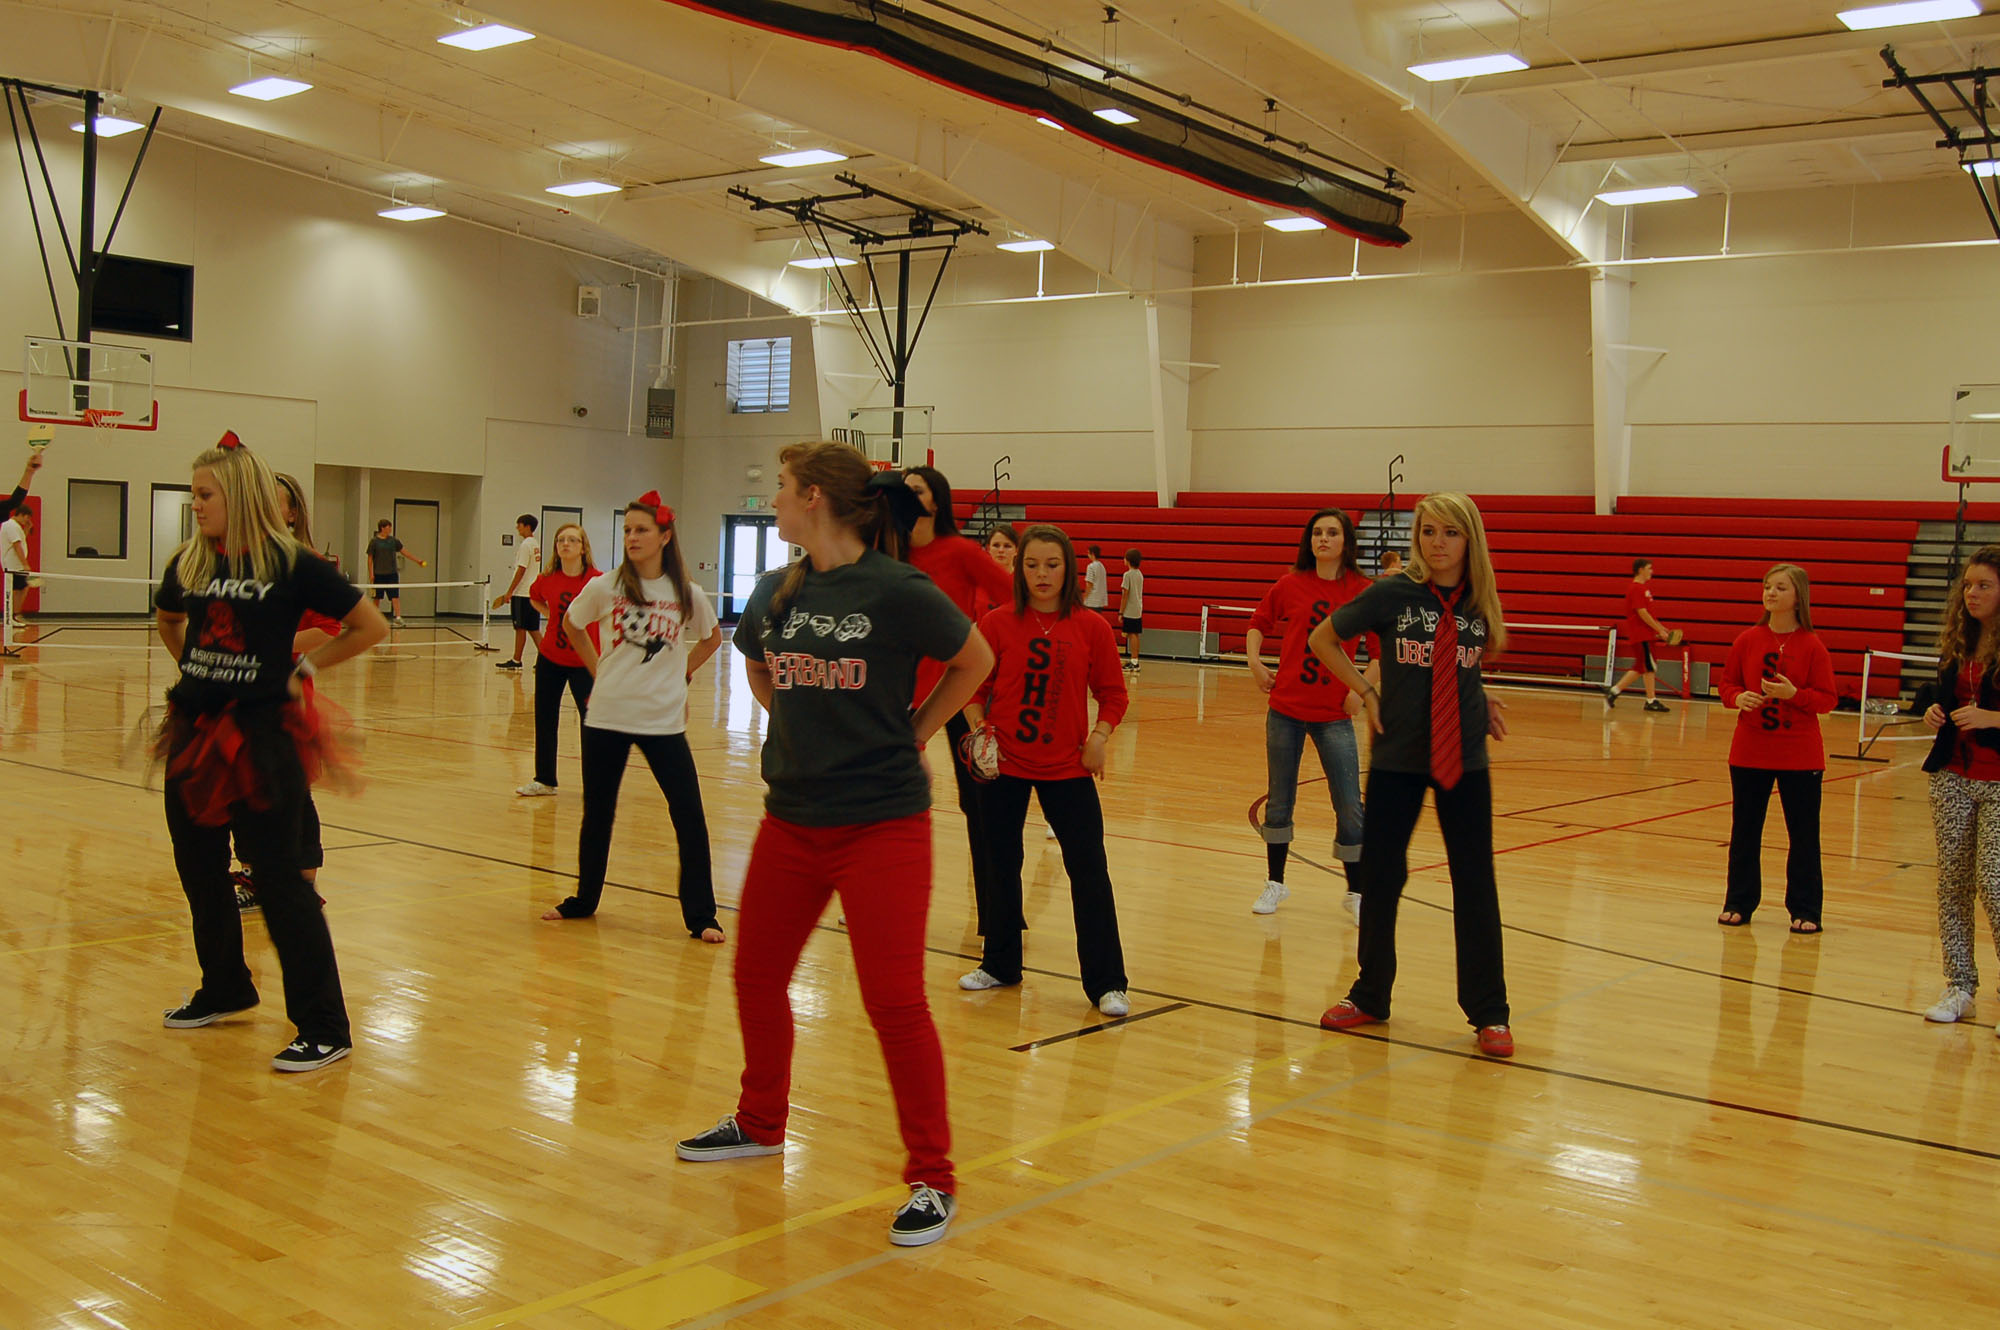 Lionsteppers dance to raise school spirit